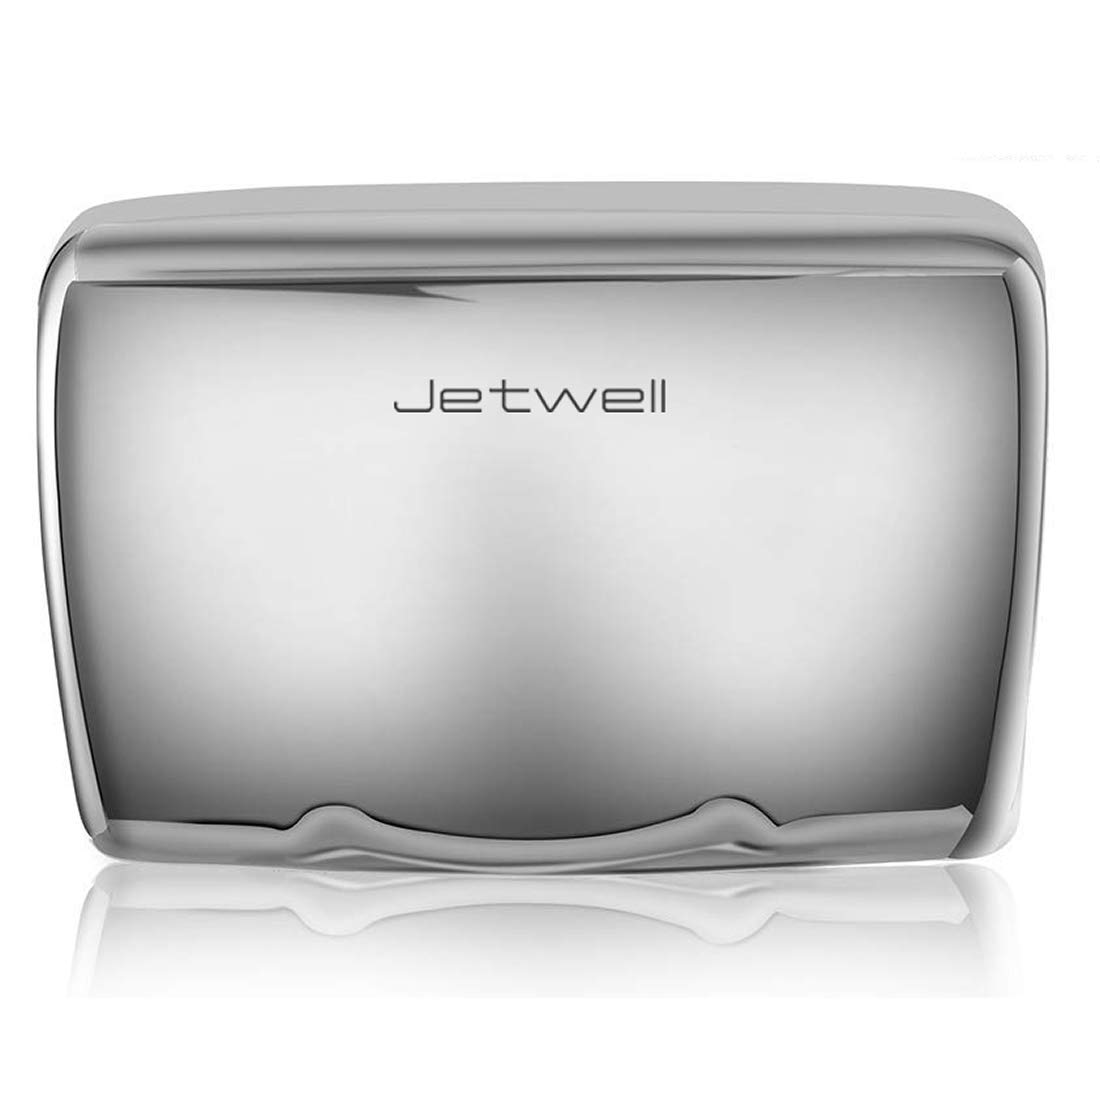 JETWELL High Speed Commercial Automatic Hand Dryer - Heavy Duty Stainless Steel - Warm Wind Hand Blower by JETWELL